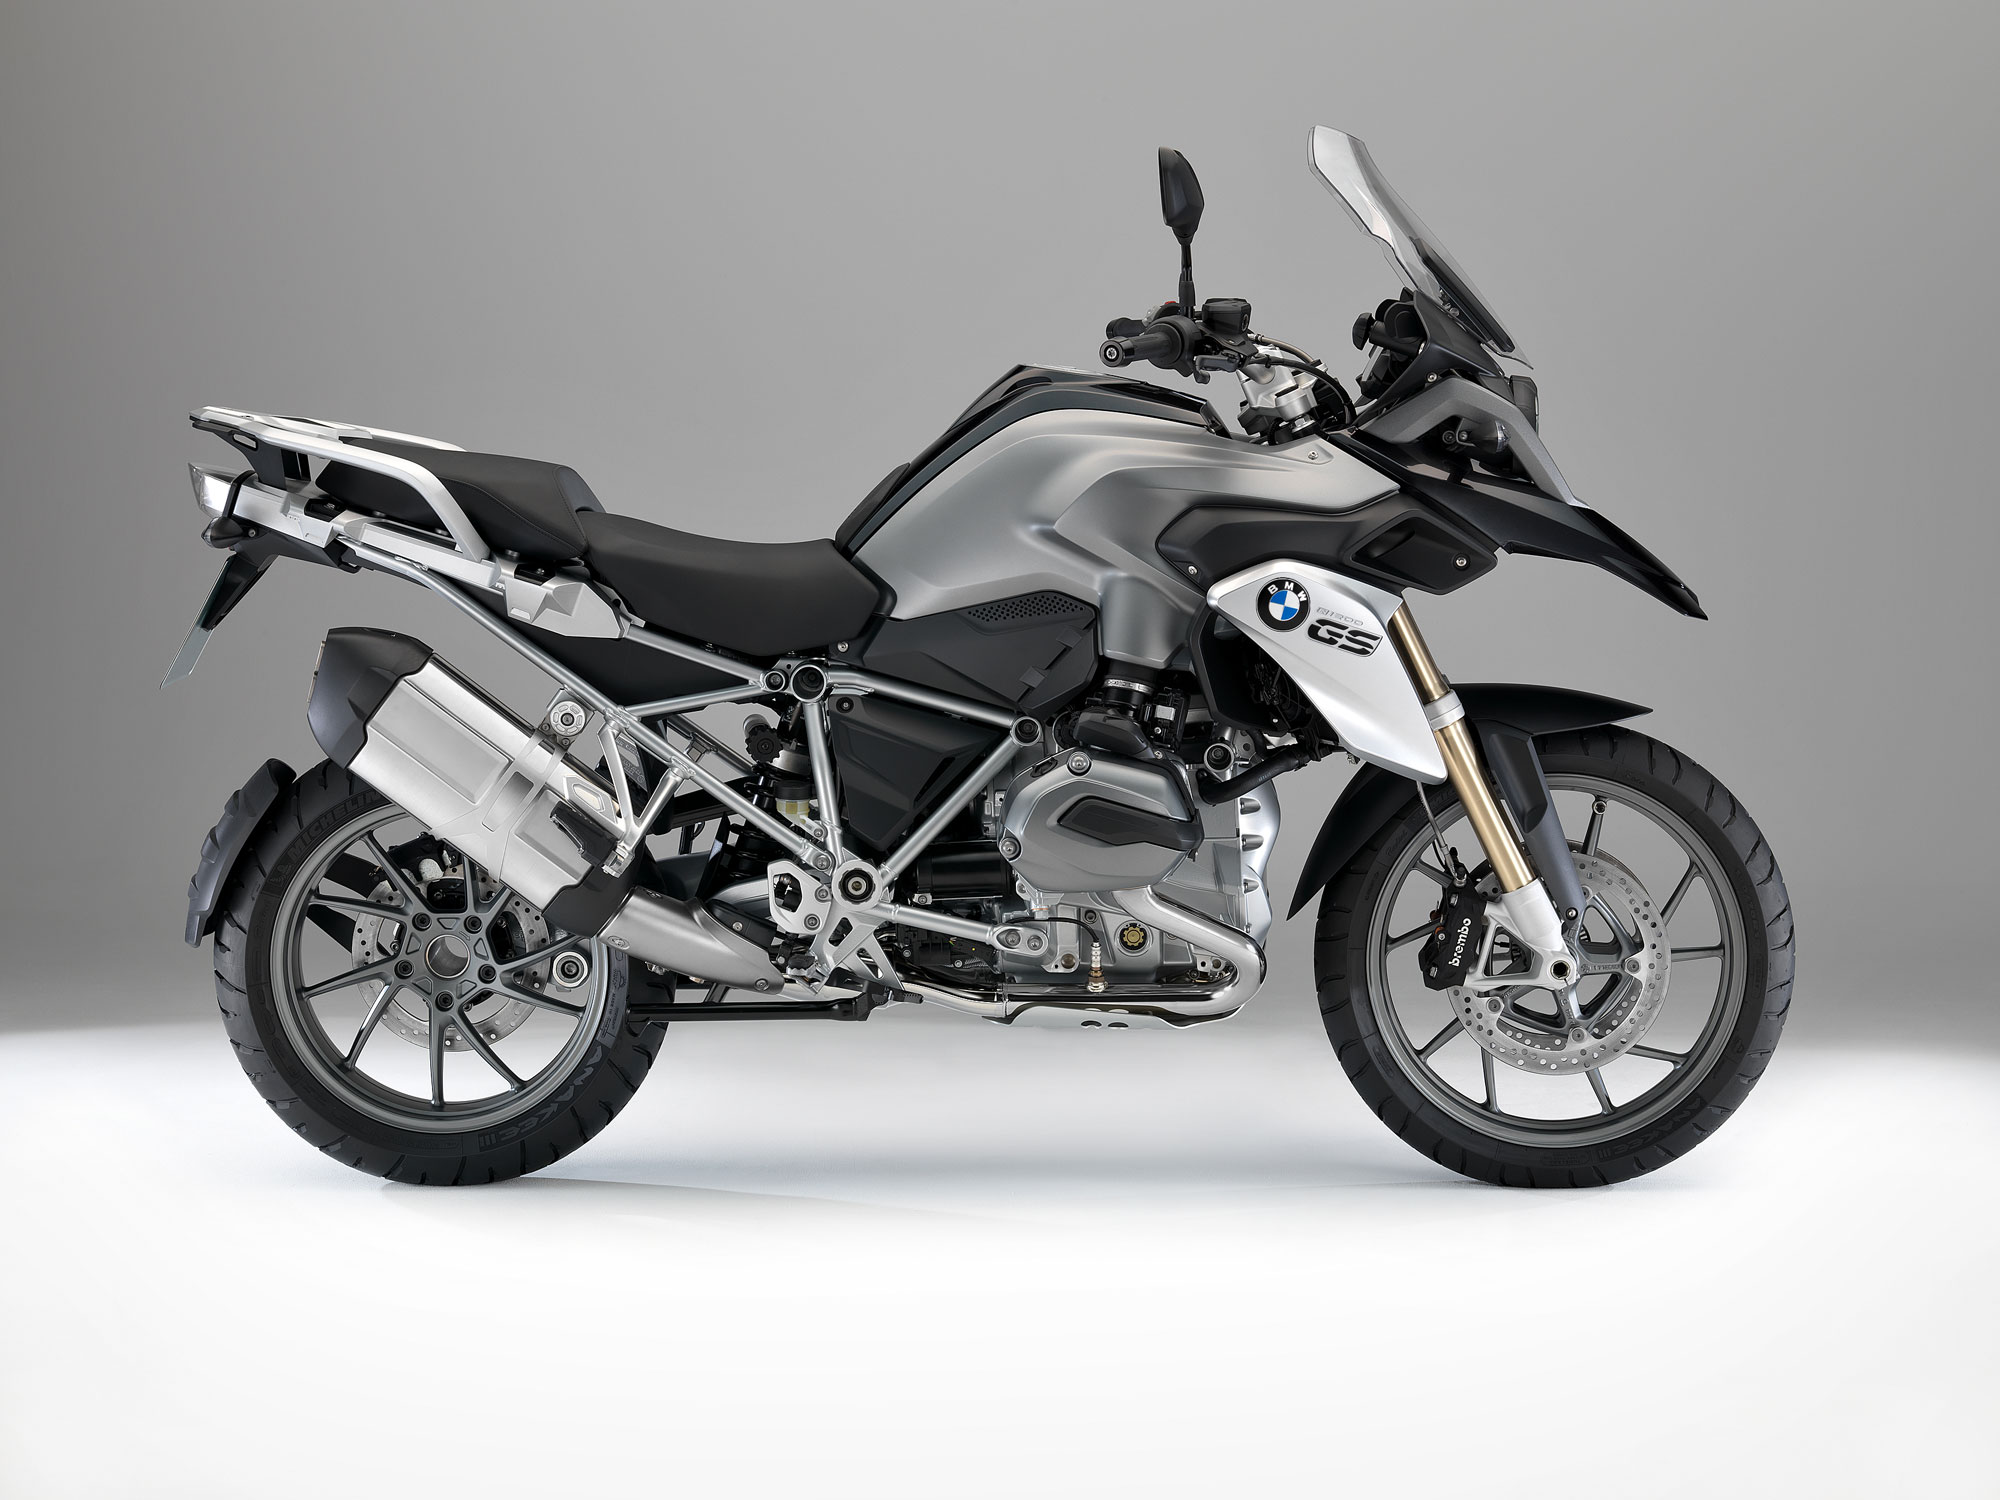 BMW R1200GS fault may cause oil to leak on tyre